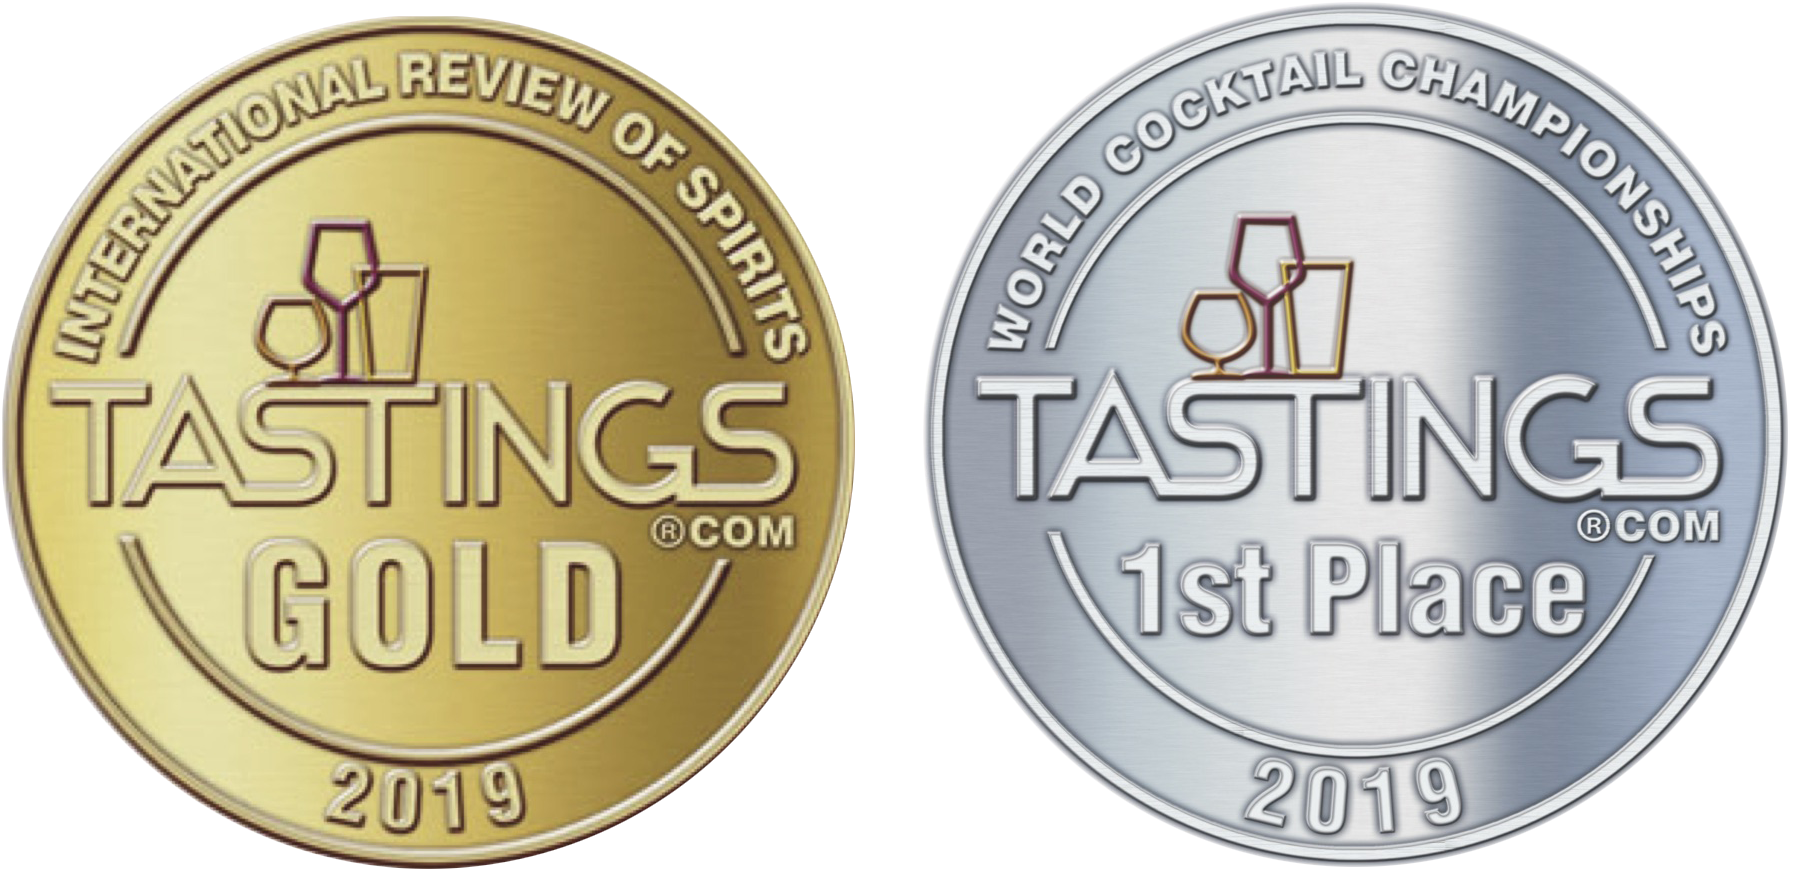 Tasting_Both Awards_2019.png